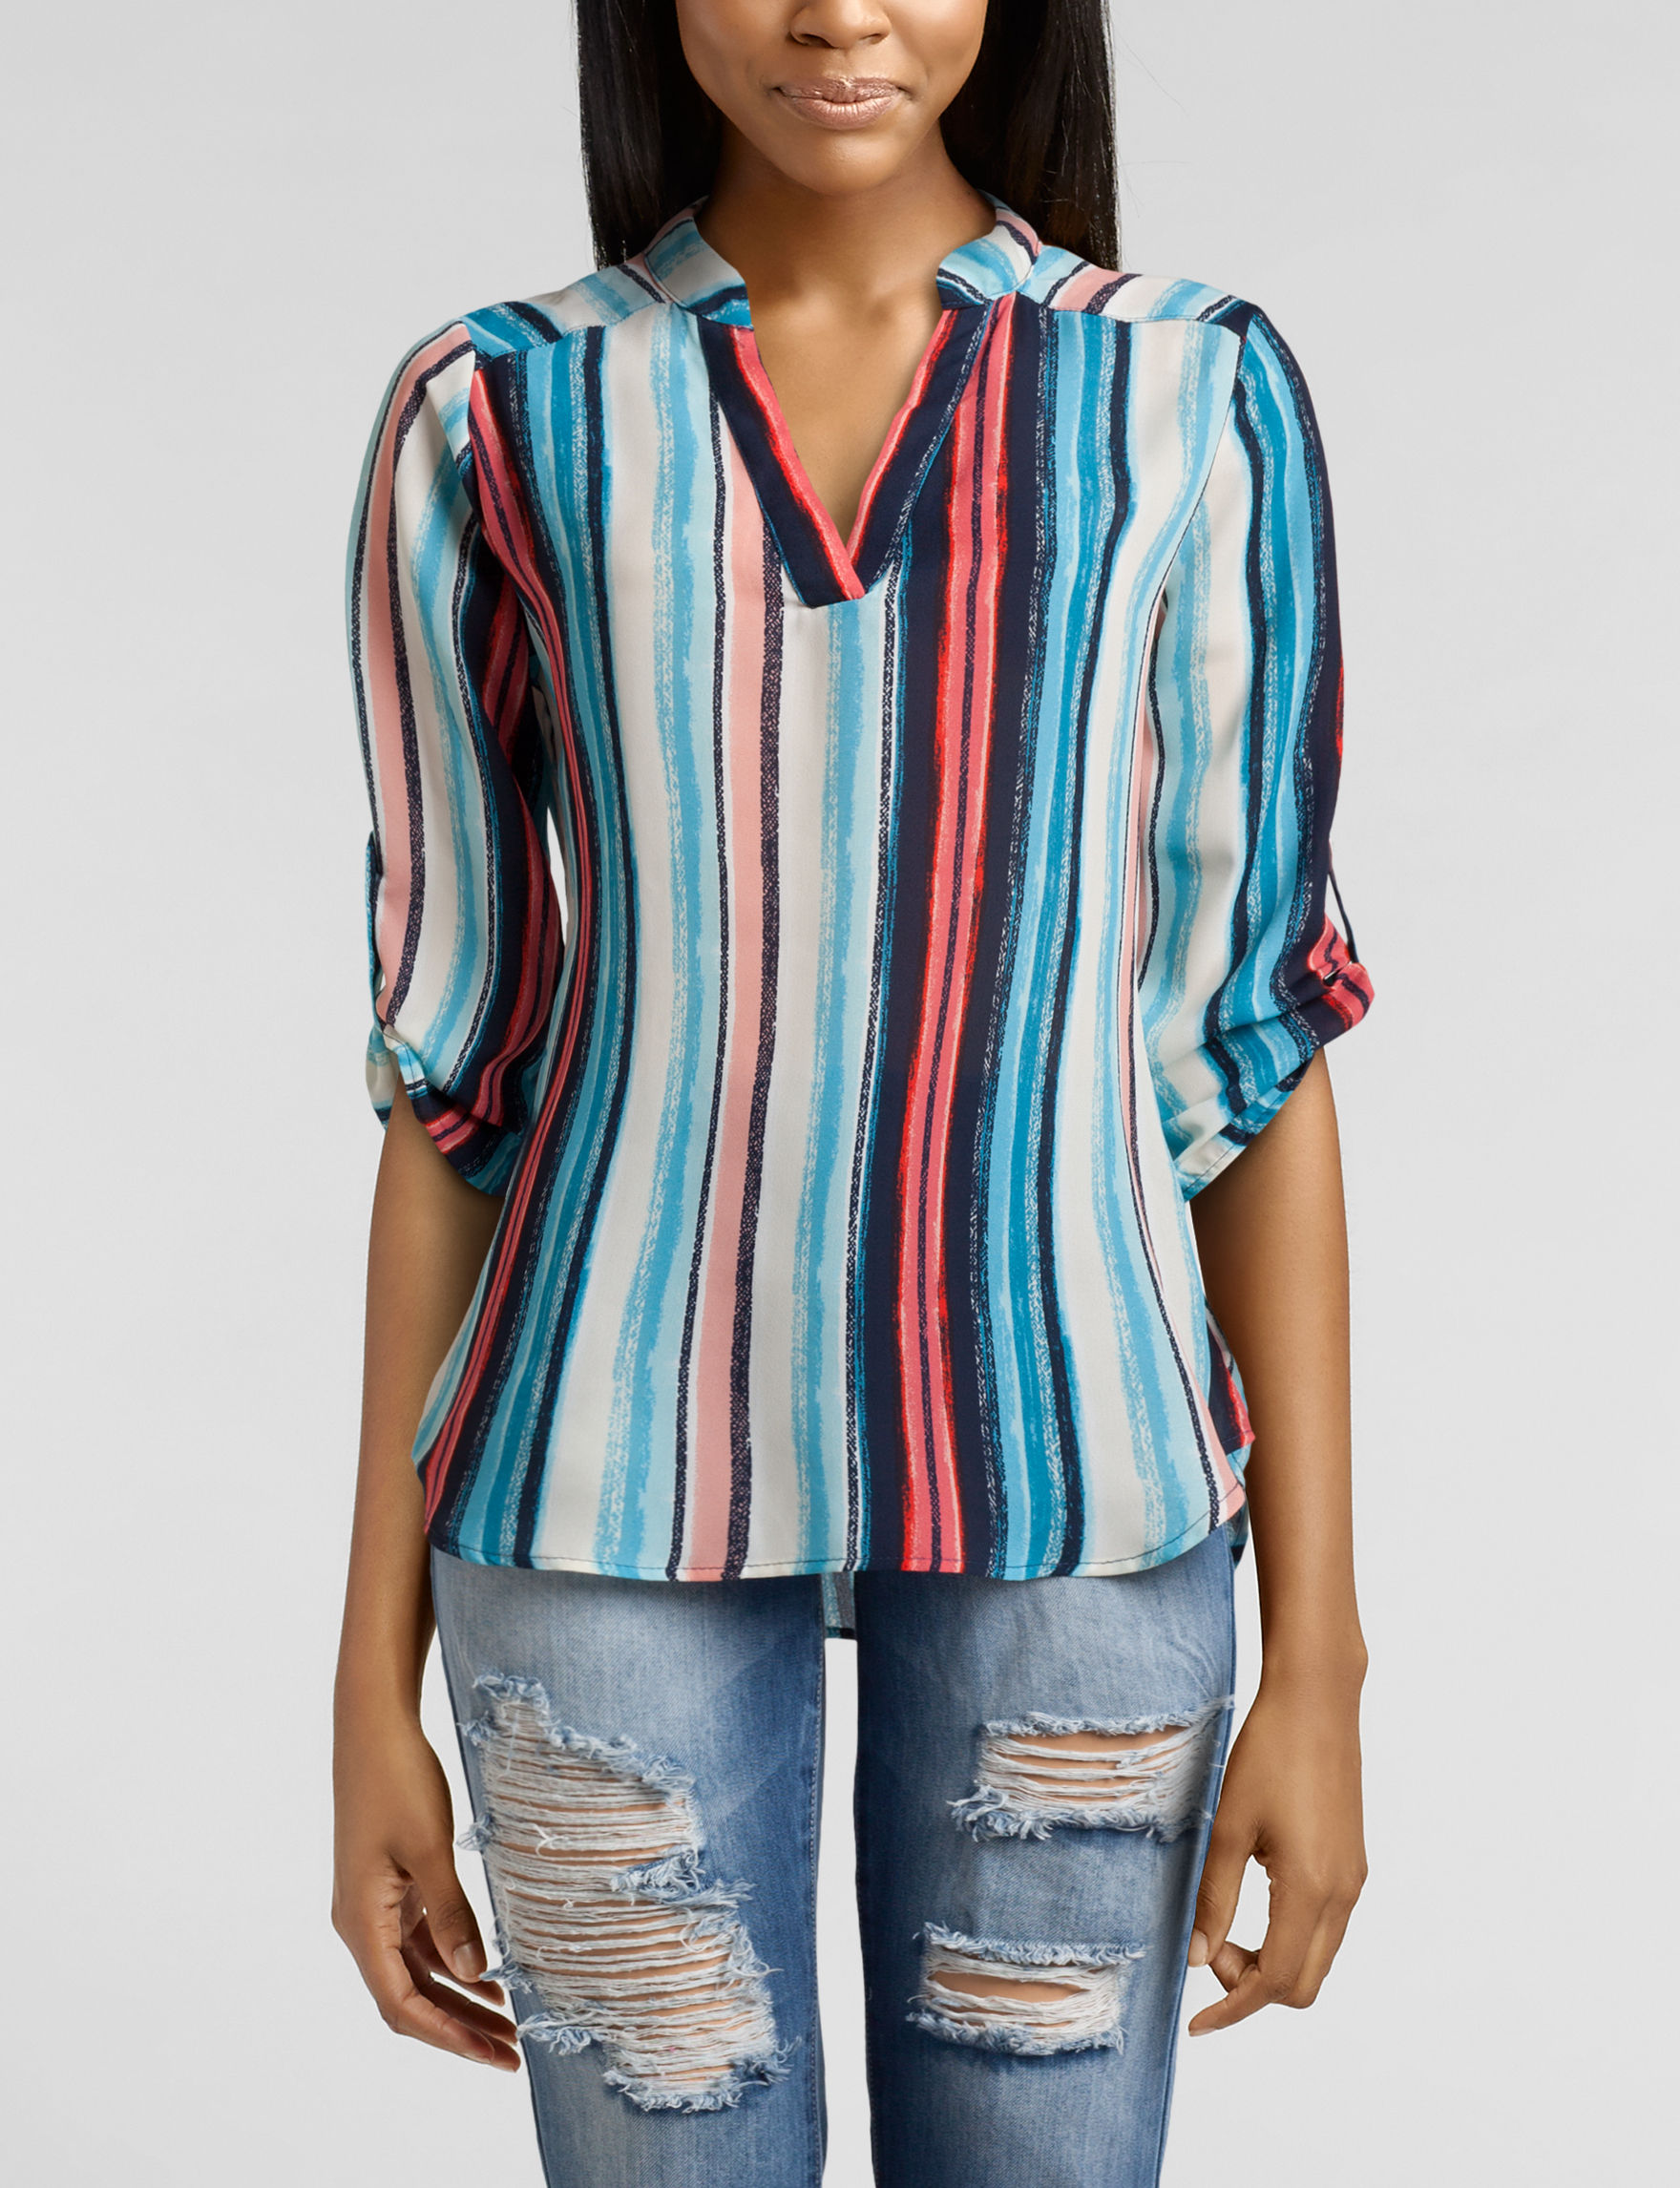 Wishful Park Blue Multi Shirts & Blouses